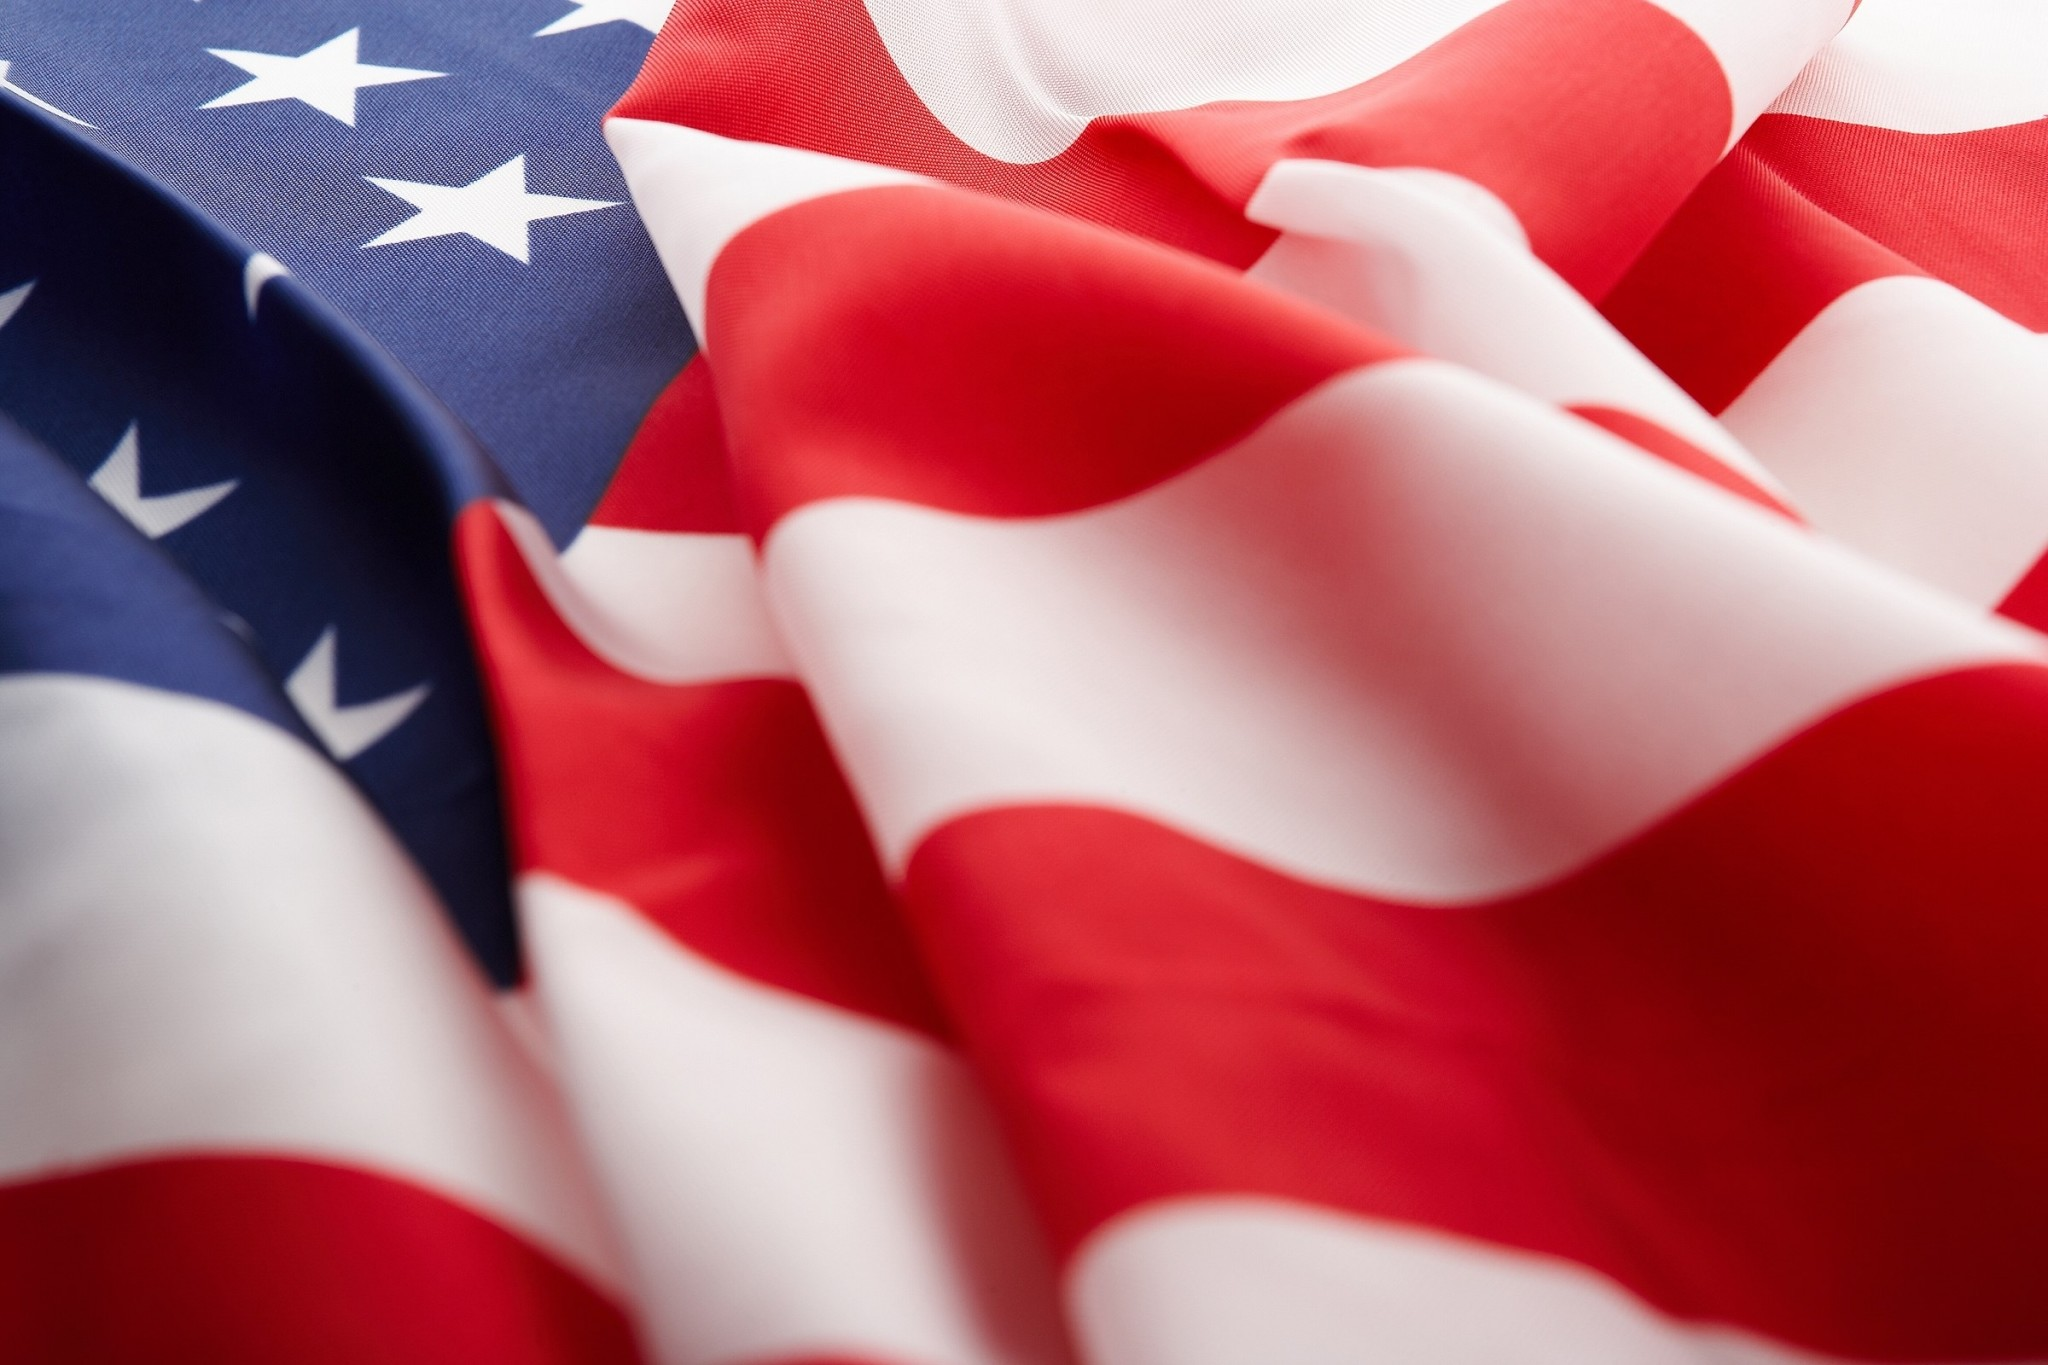 american flag photography picture